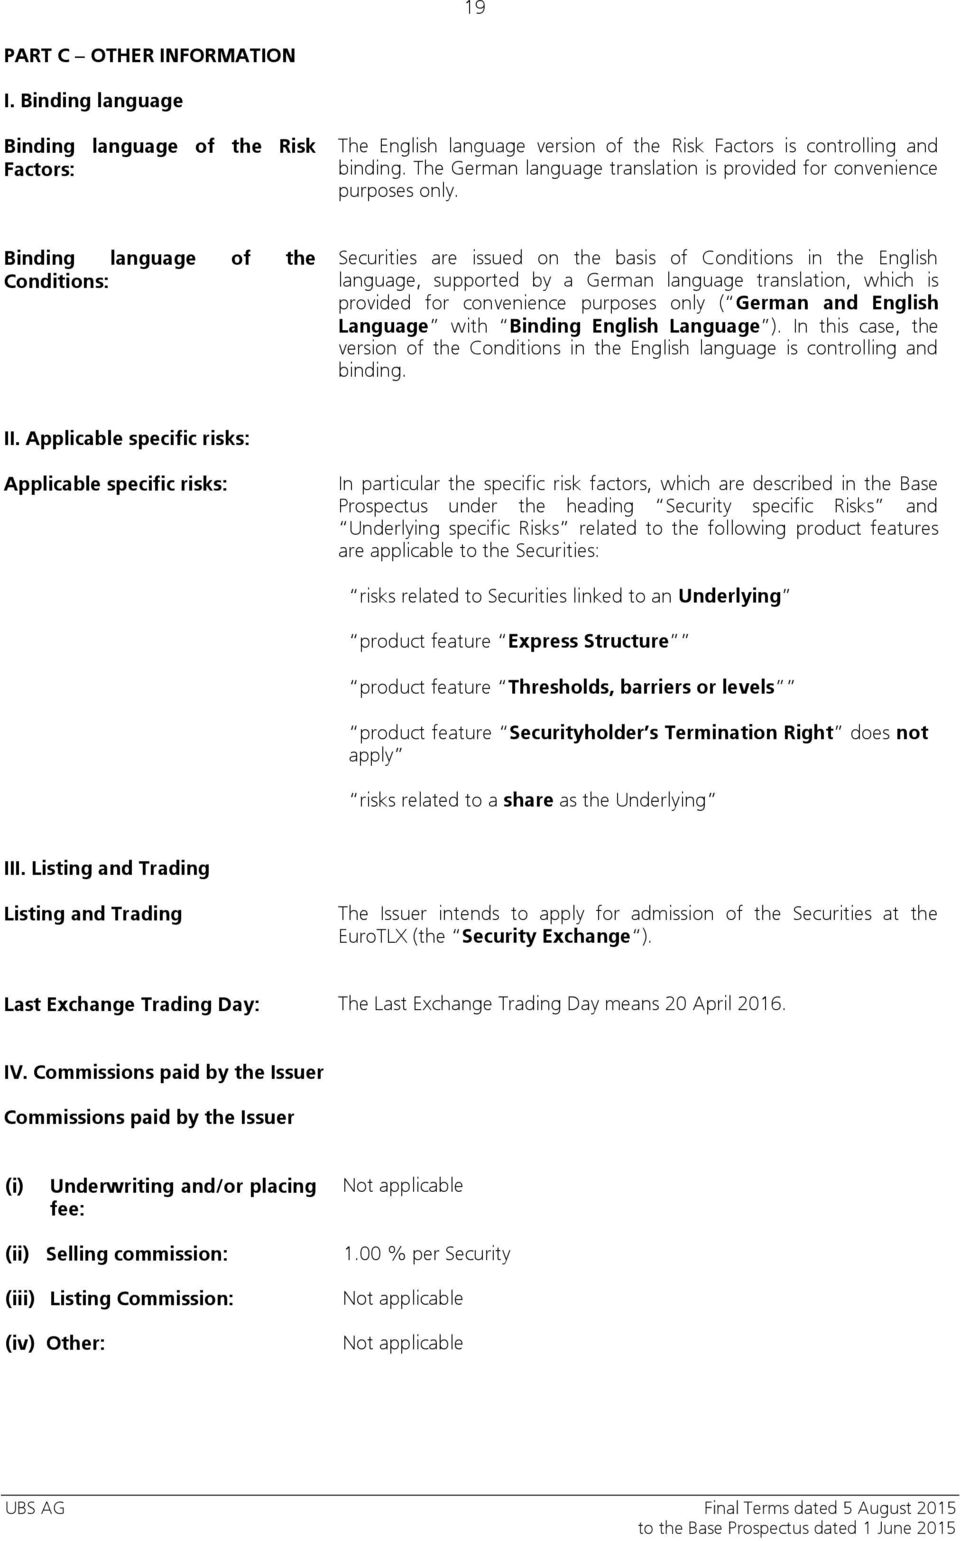 Binding language of the Conditions: Securities are issued on the basis of Conditions in the English language, supported by a German language translation, which is provided for convenience purposes